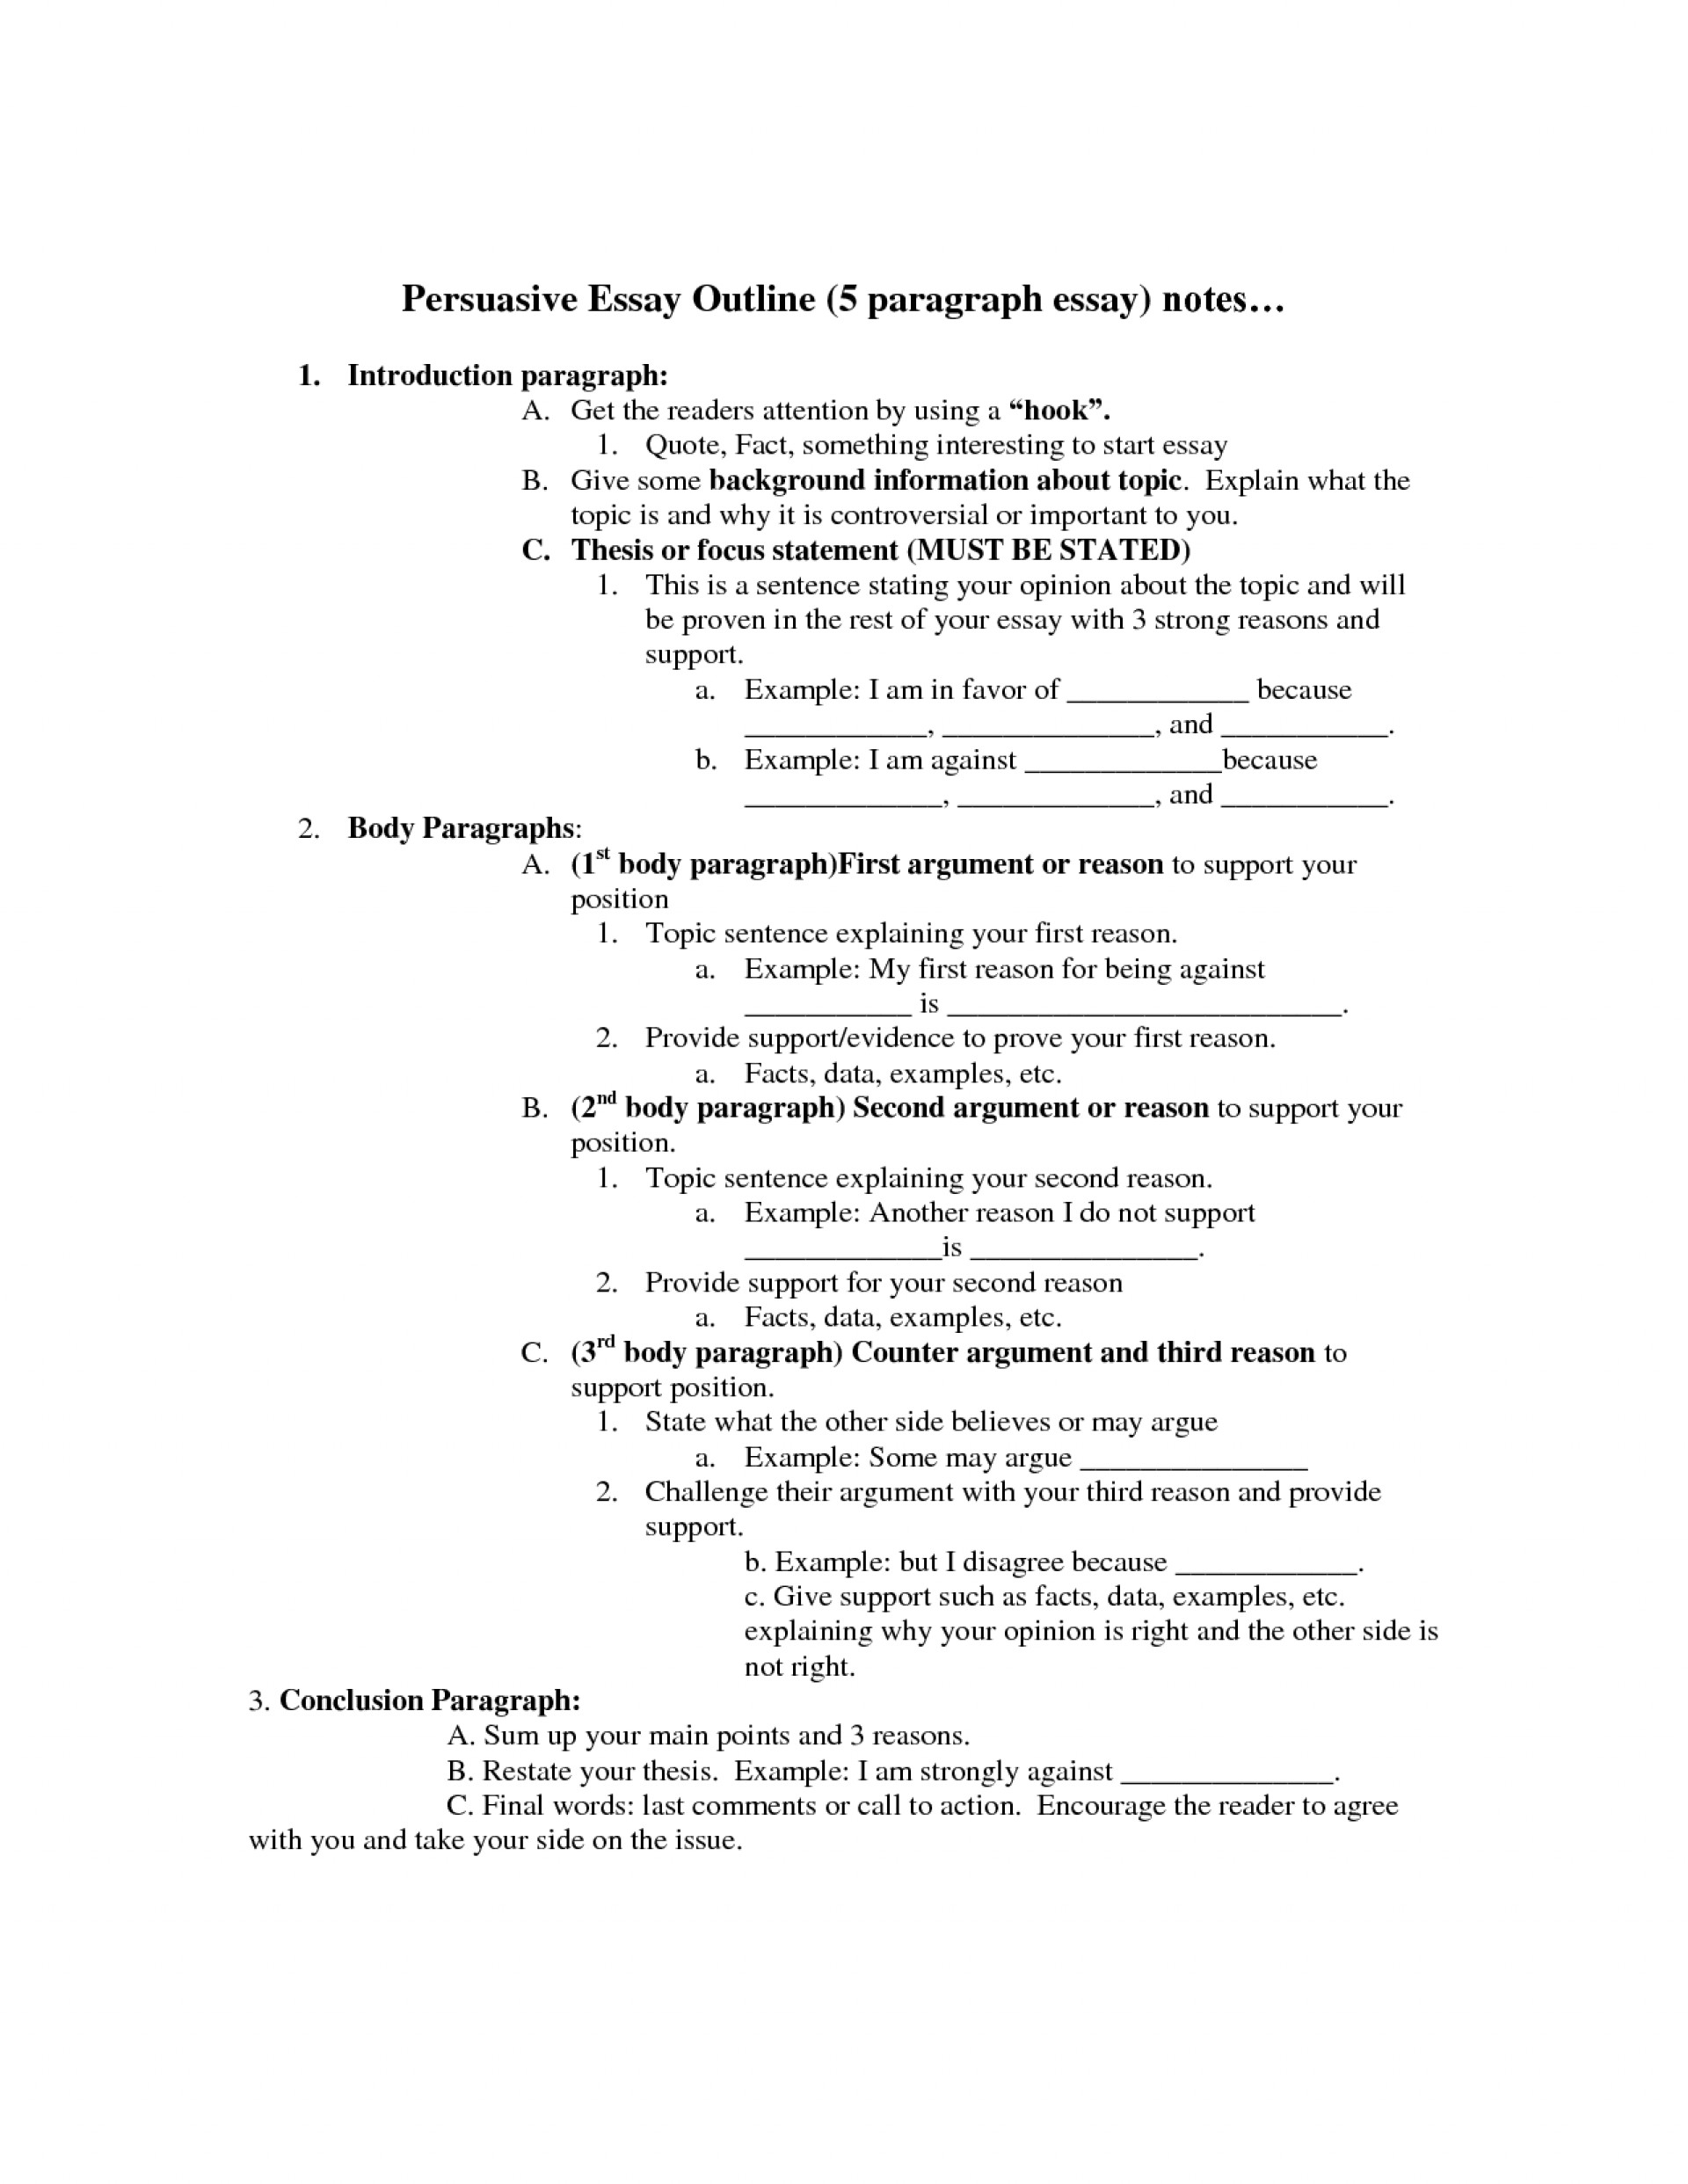 Example Of A Thesis Statement For An Essay  Business Essay Writing also Essay On Science And Technology  Argument Research Essay Outline An For Paper  Mental Health Essays